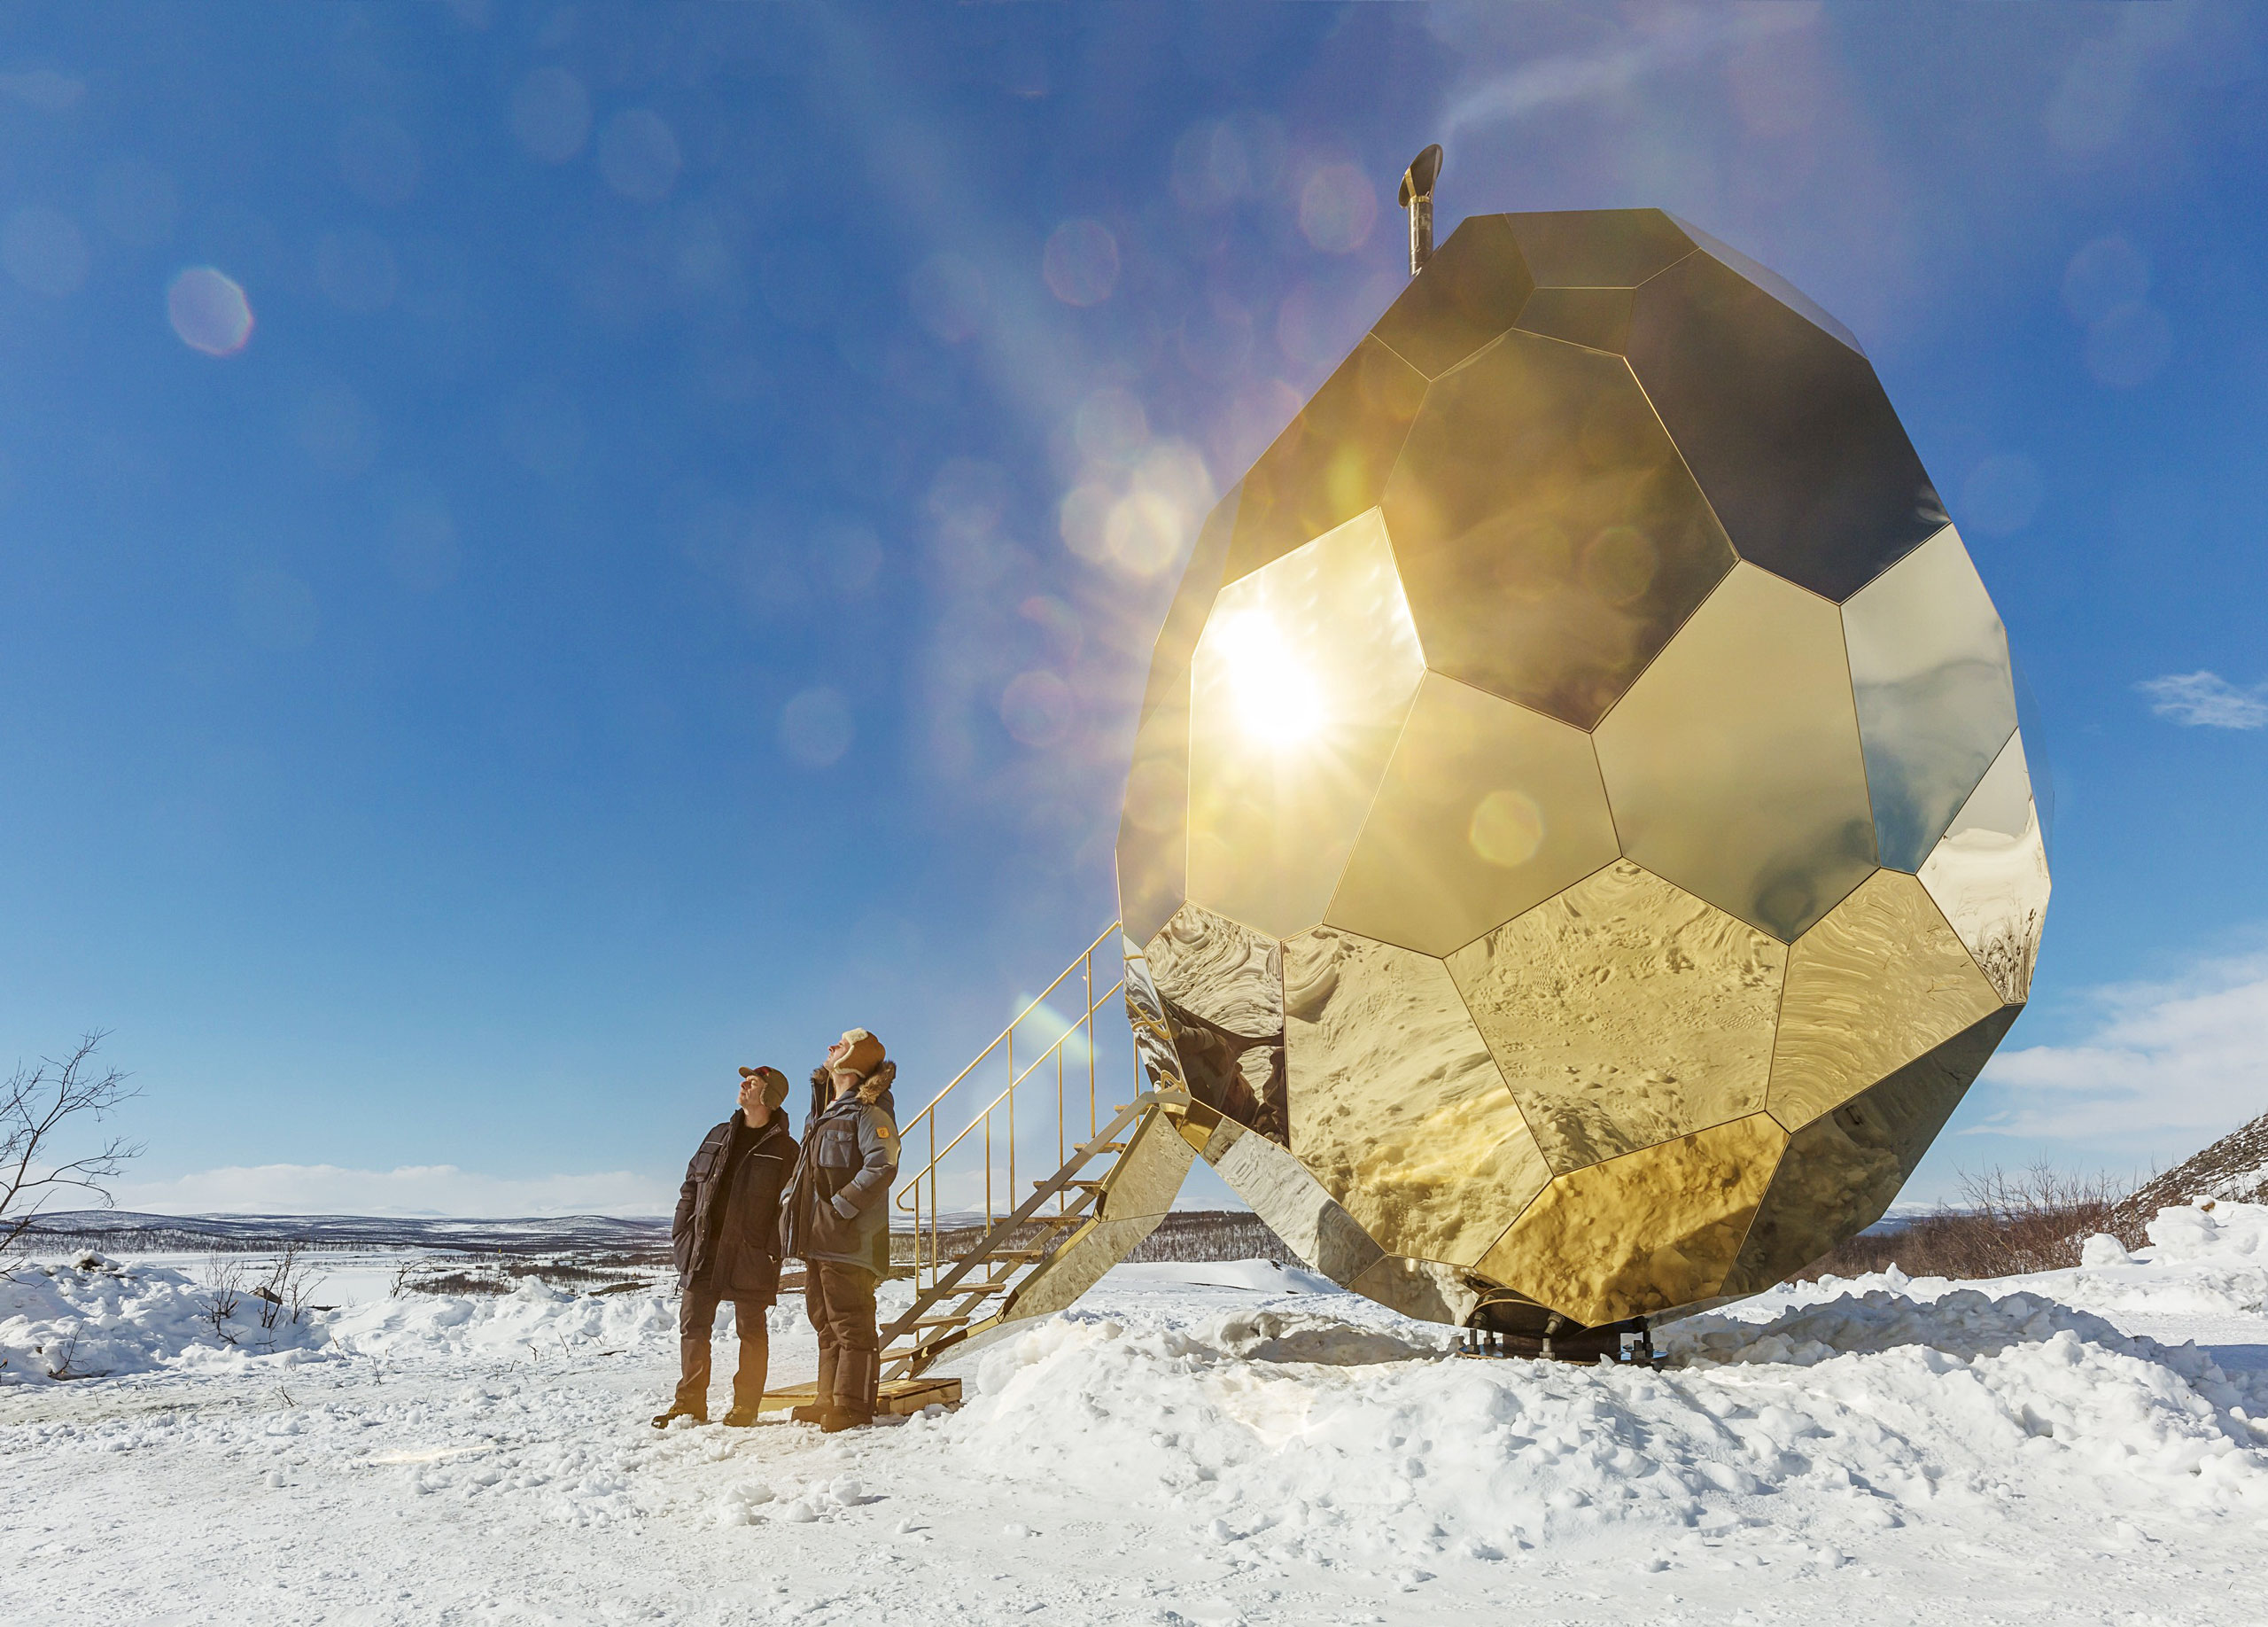 Riksbyggen is commemorating the start of Kiruna's urban transformation project by opening SOLAR EGG, a public sauna art installation by prizewinning artistic duo Bigert & Bergström, to the city and its inhabitants.